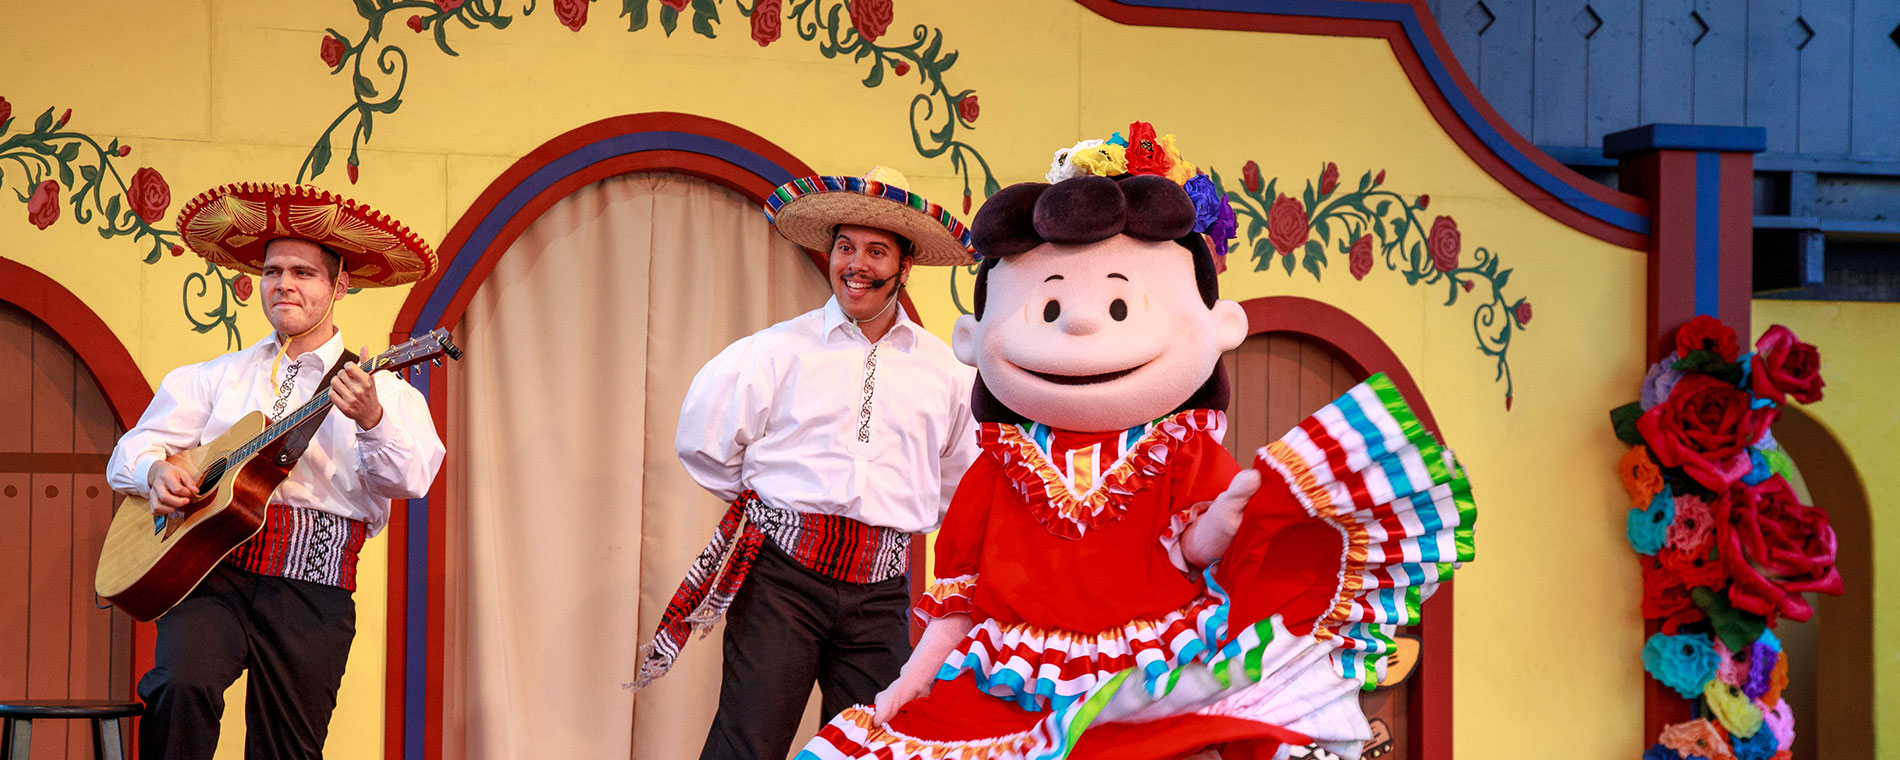 Celebrating Children & Hispanic Culture at California's Great America